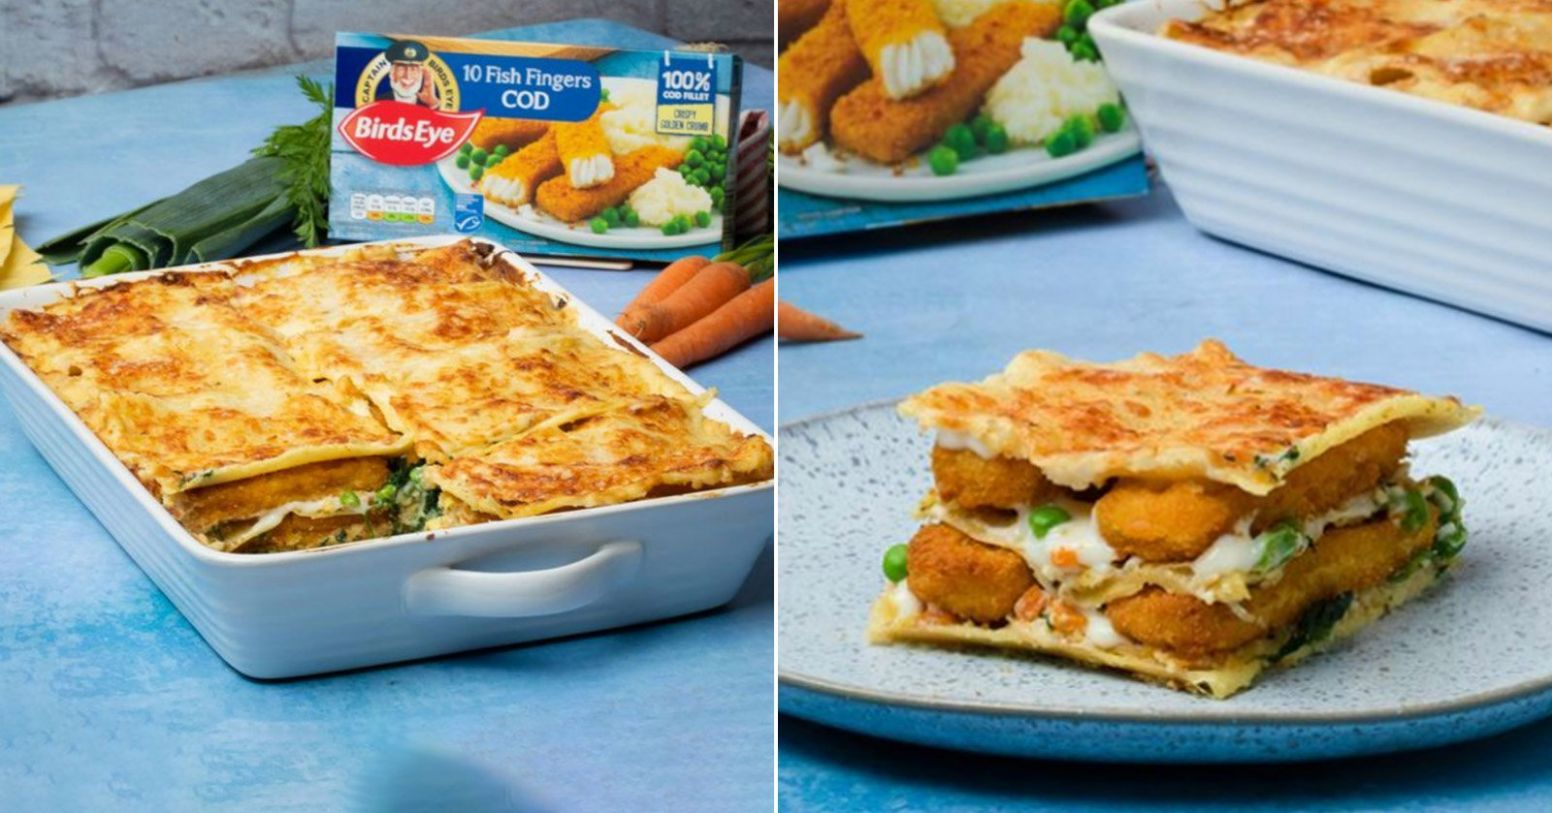 Birds Eye's fish finger lasagne gets a big nope from British folks ...